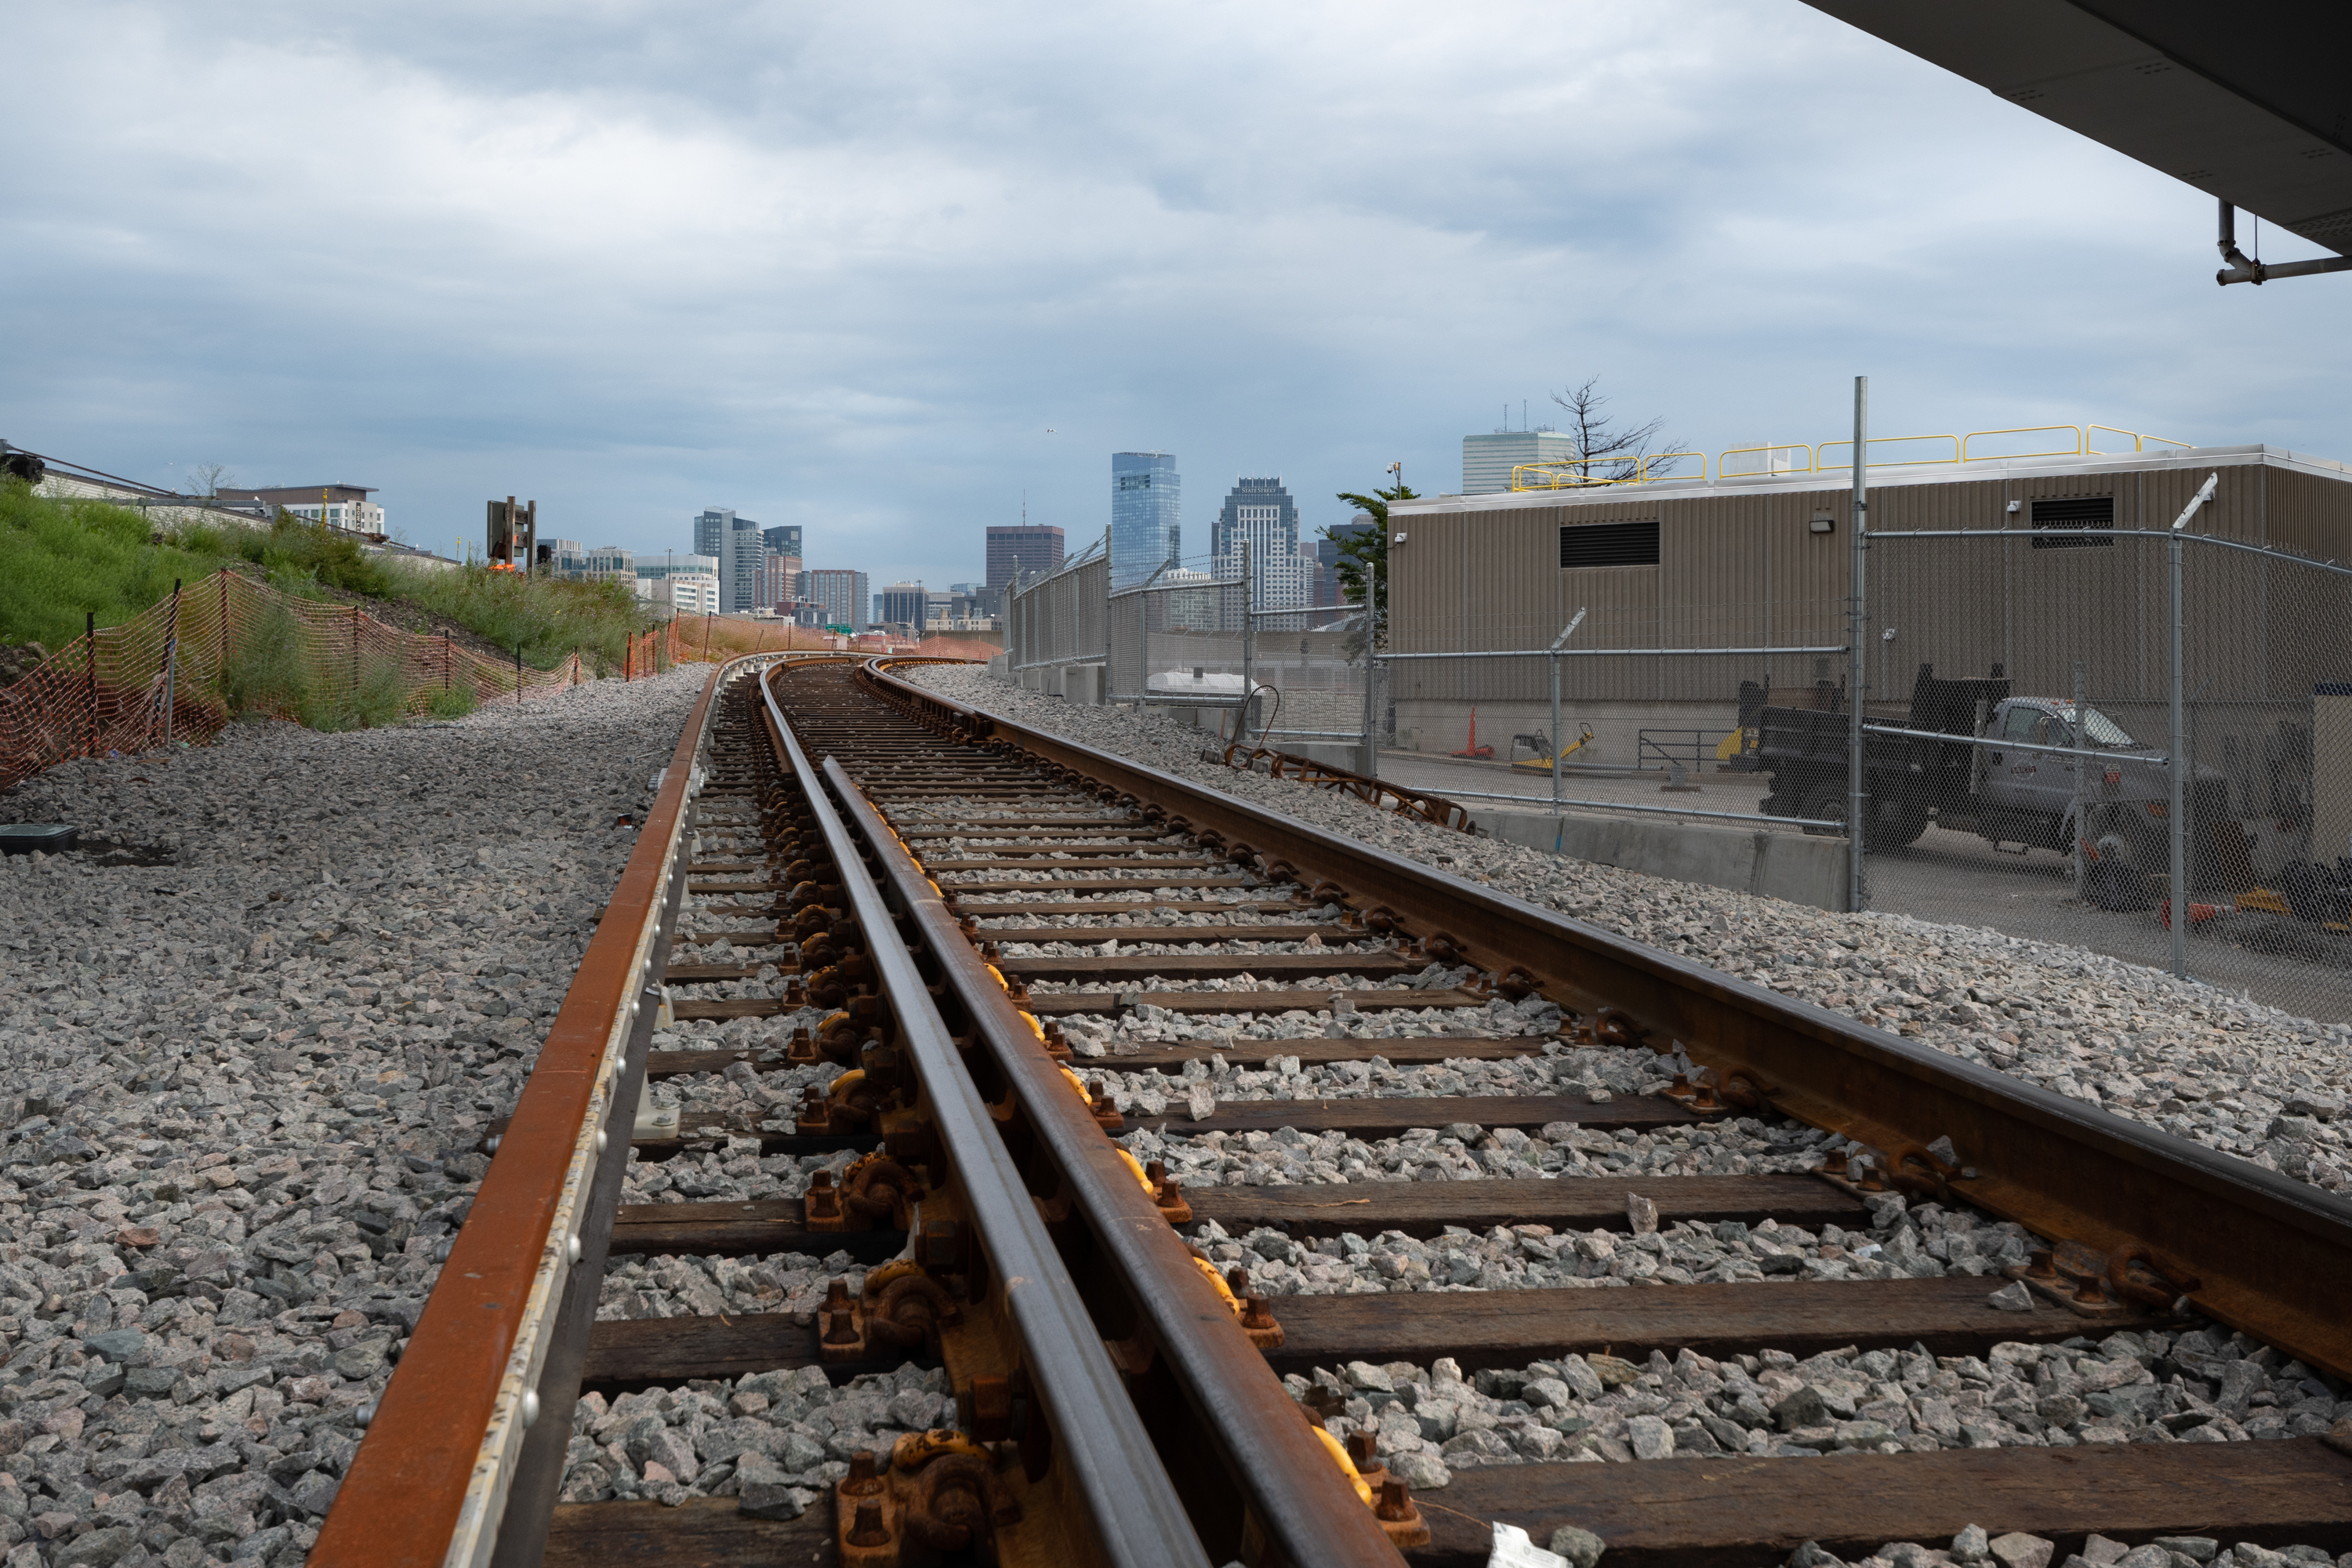 Work on the access track from South Boston's Cabot Yard to the test track is progressing. (July 2019)